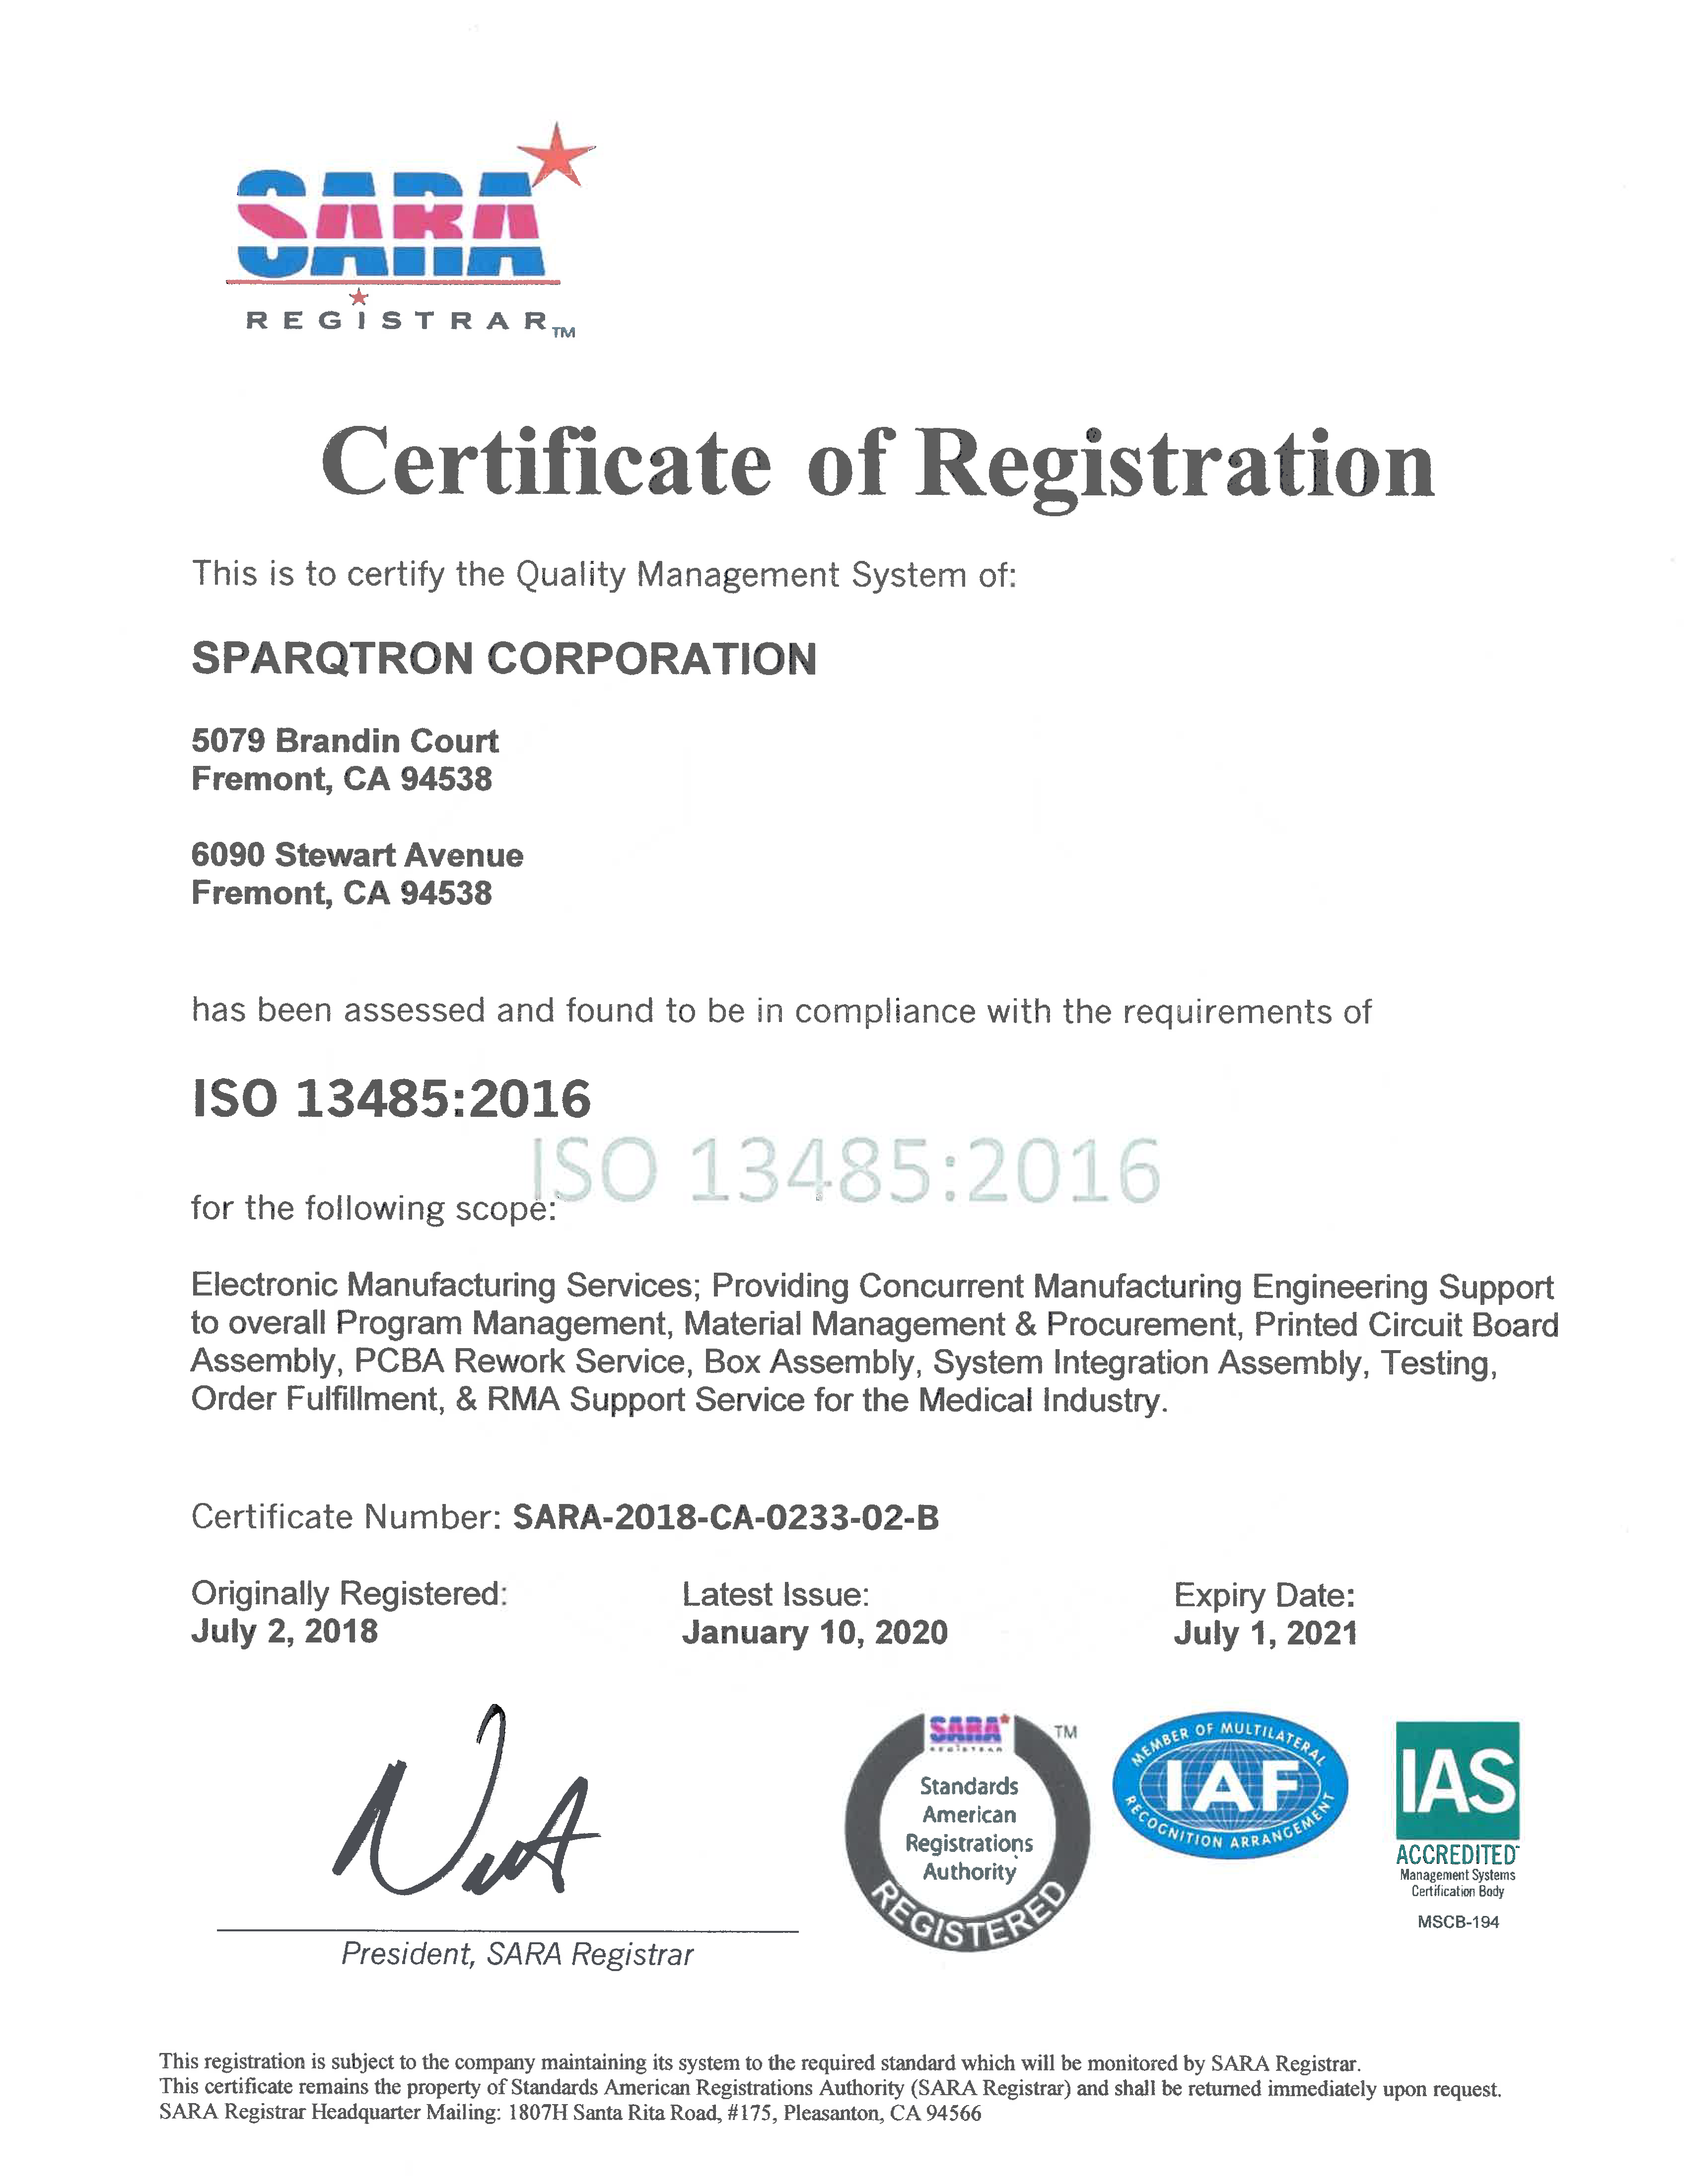 P5-Quality Commitment, ISO 9001 & 13485 Certified